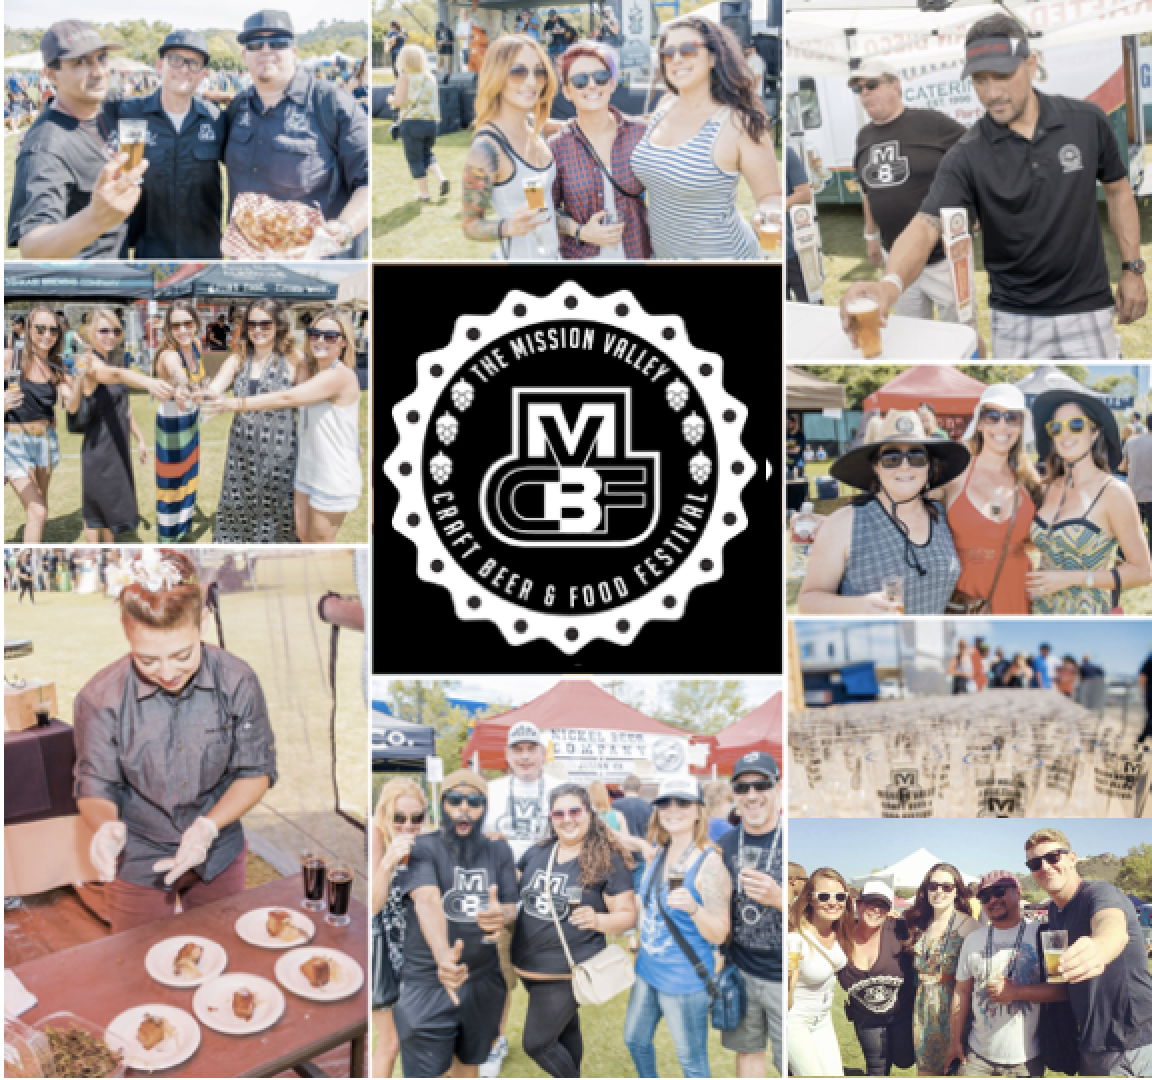 Save on passes & win tickets to the Mission Valley Craft Beer & Food Festival - March 31!